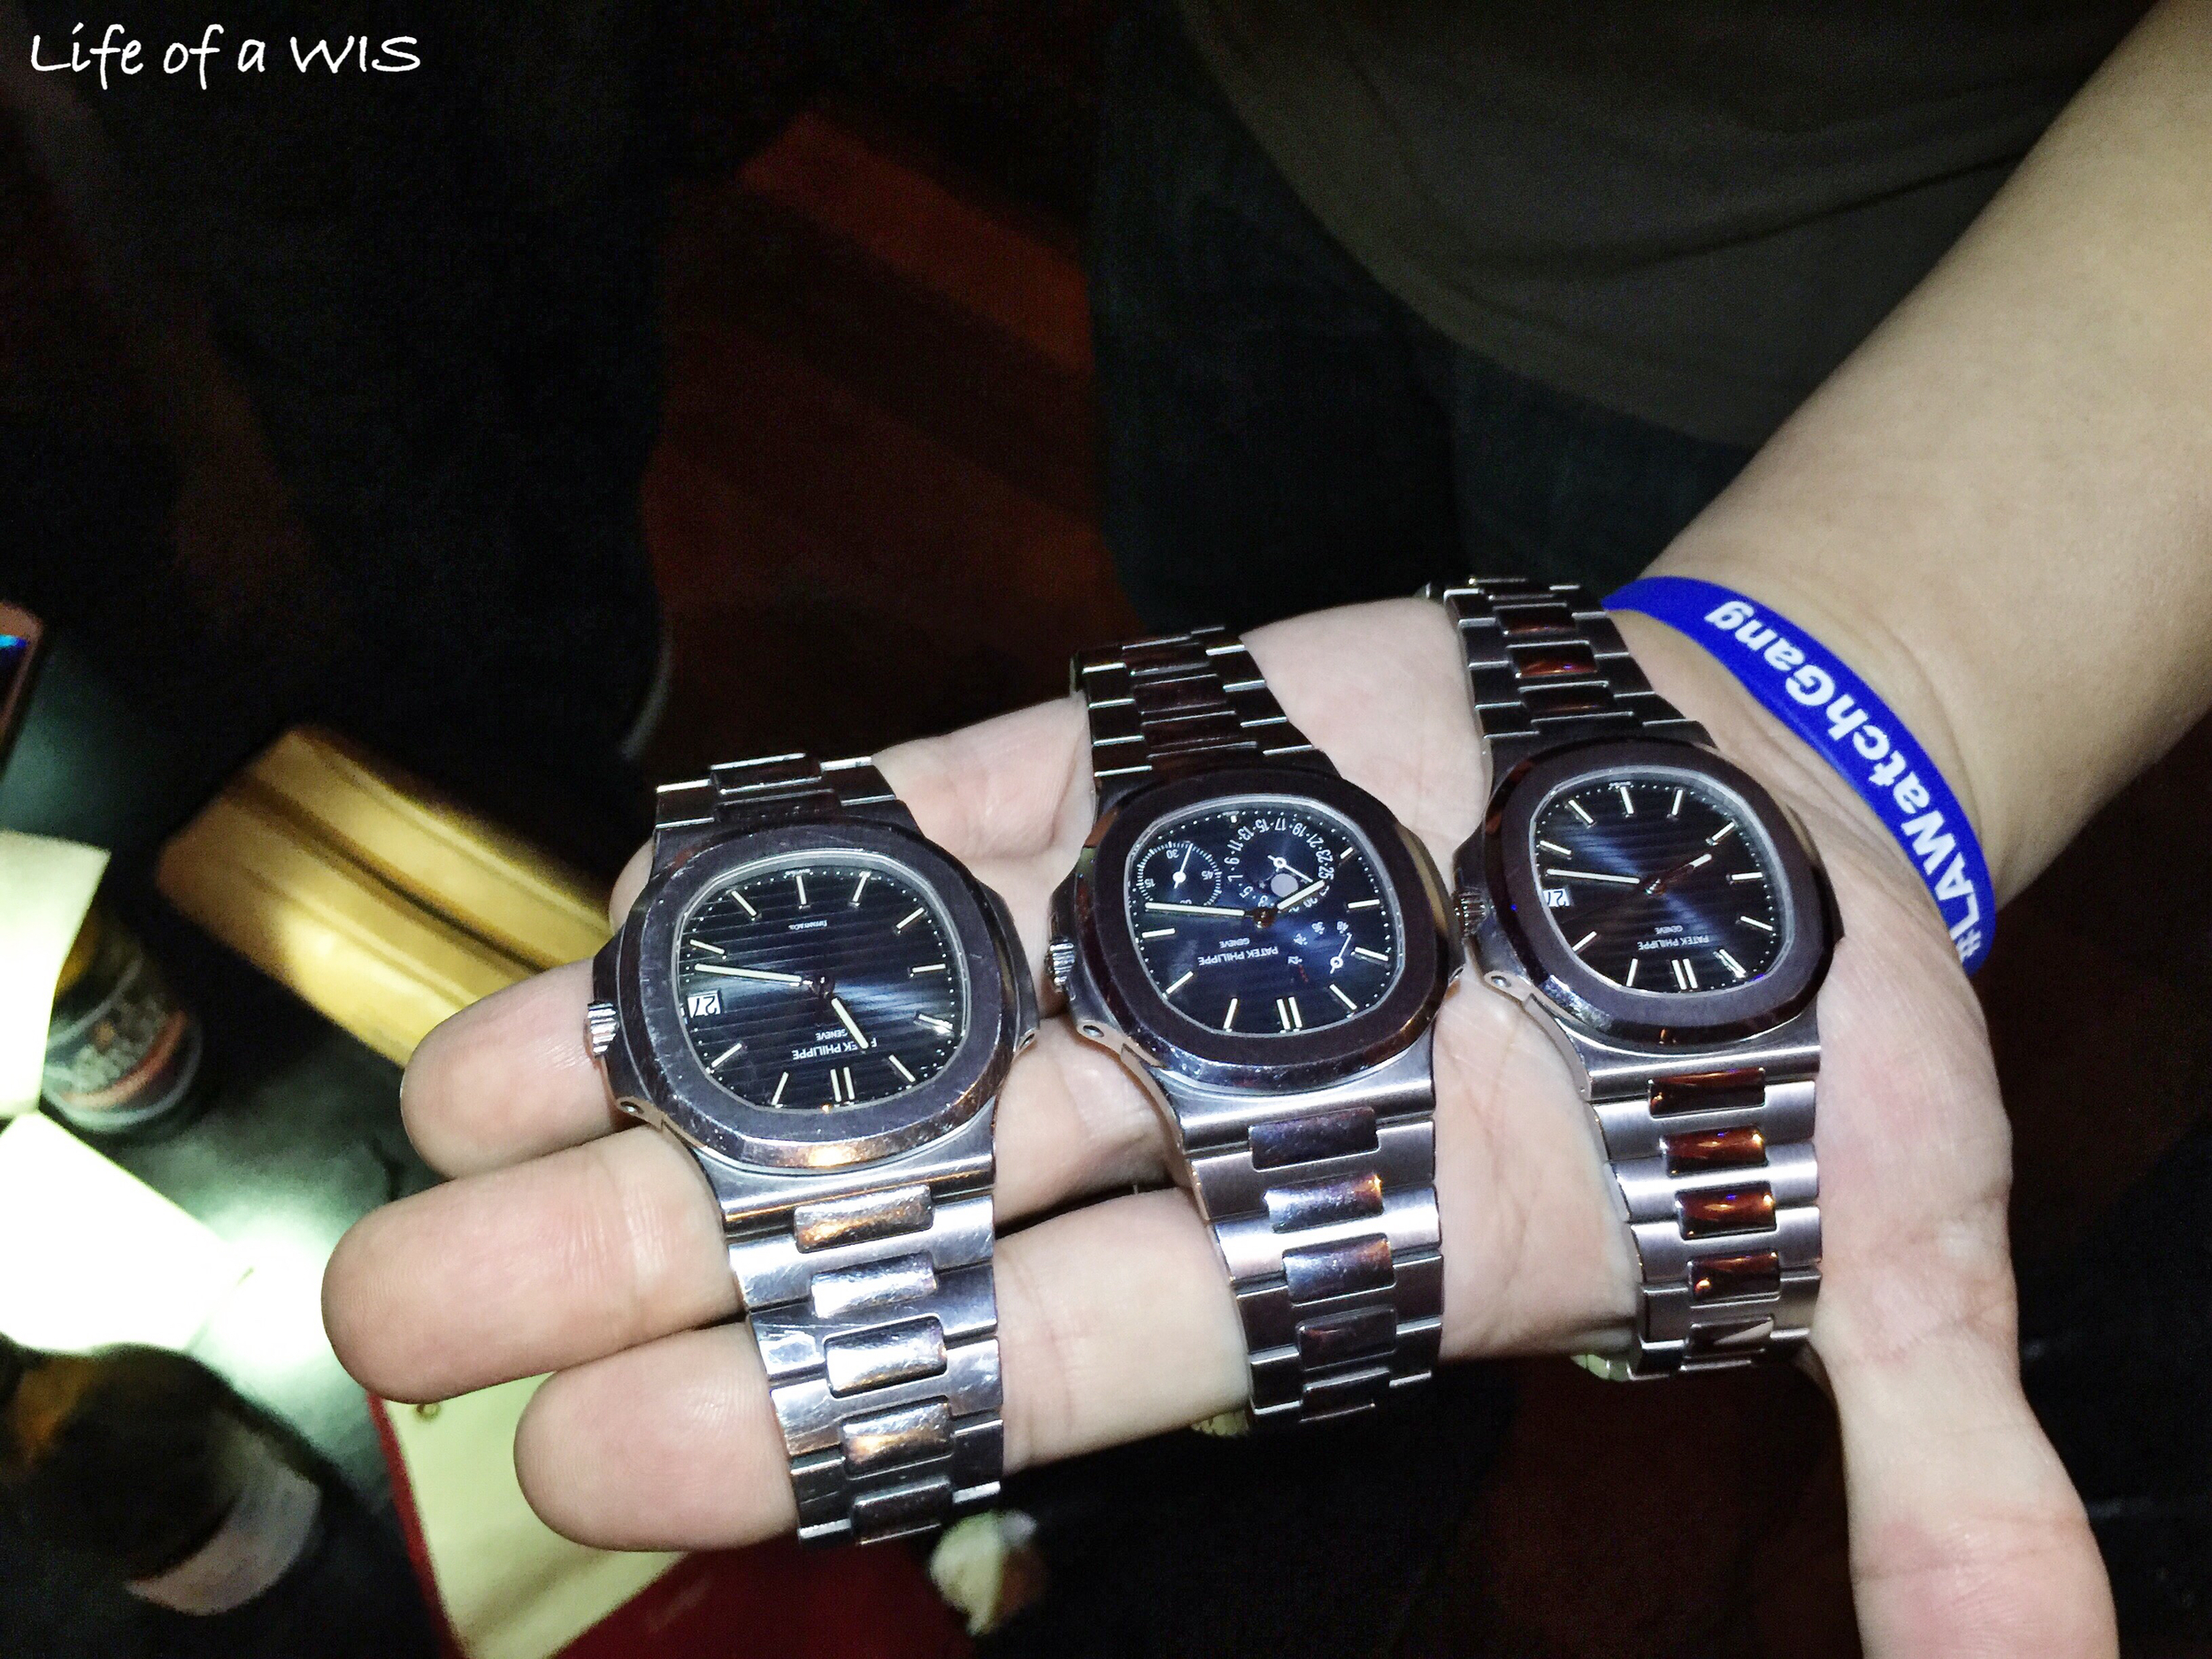 Three Pateks are better than one right?